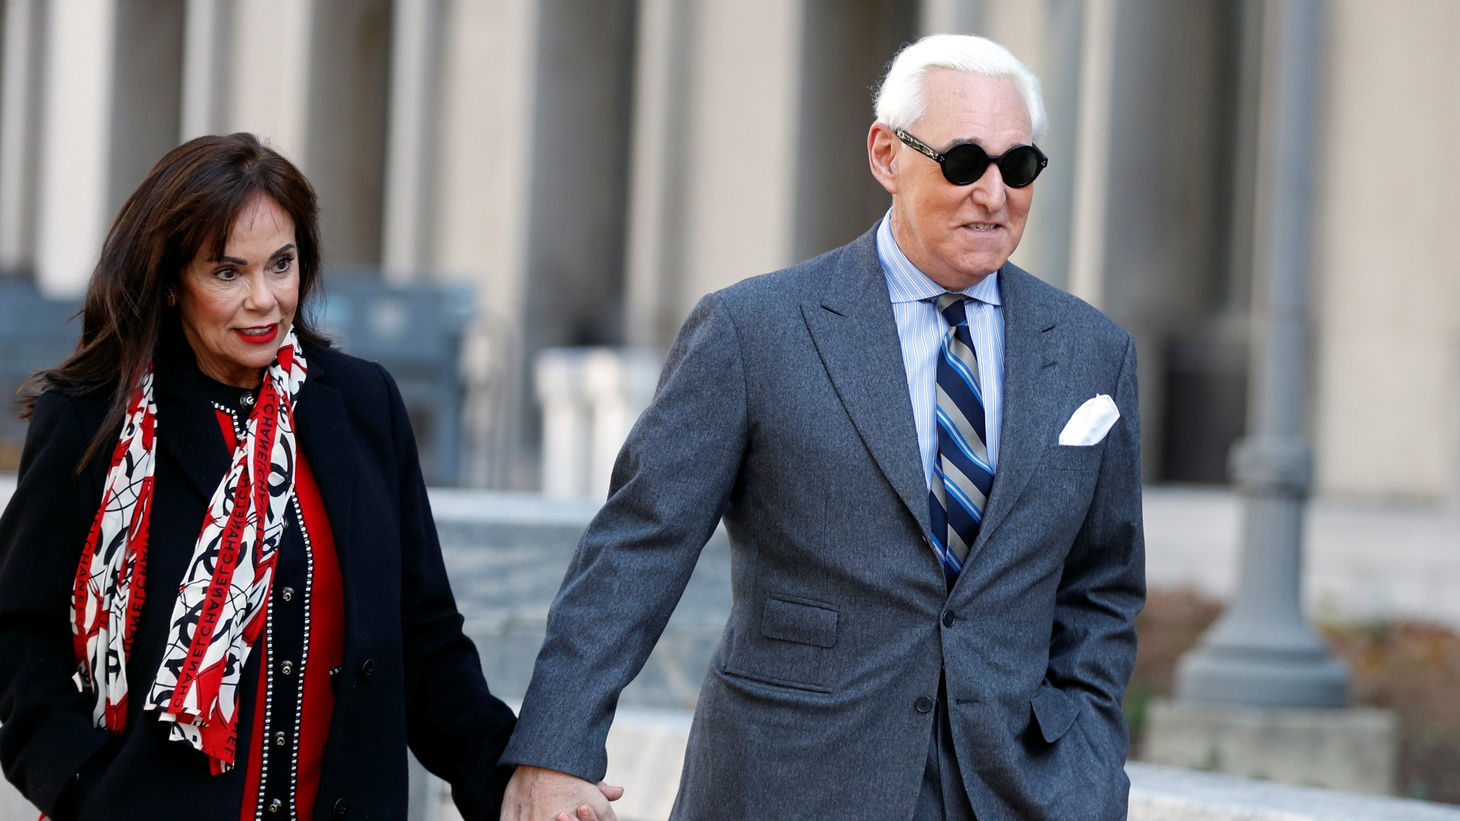 Roger Stone, former campaign adviser to U.S. President Donald Trump, arrives with his wife Nydia for the continuation of his criminal trial on charges of lying to Congress, obstructing justice and witness tampering at U.S. District Court in Washington, U.S., November 13, 2019.